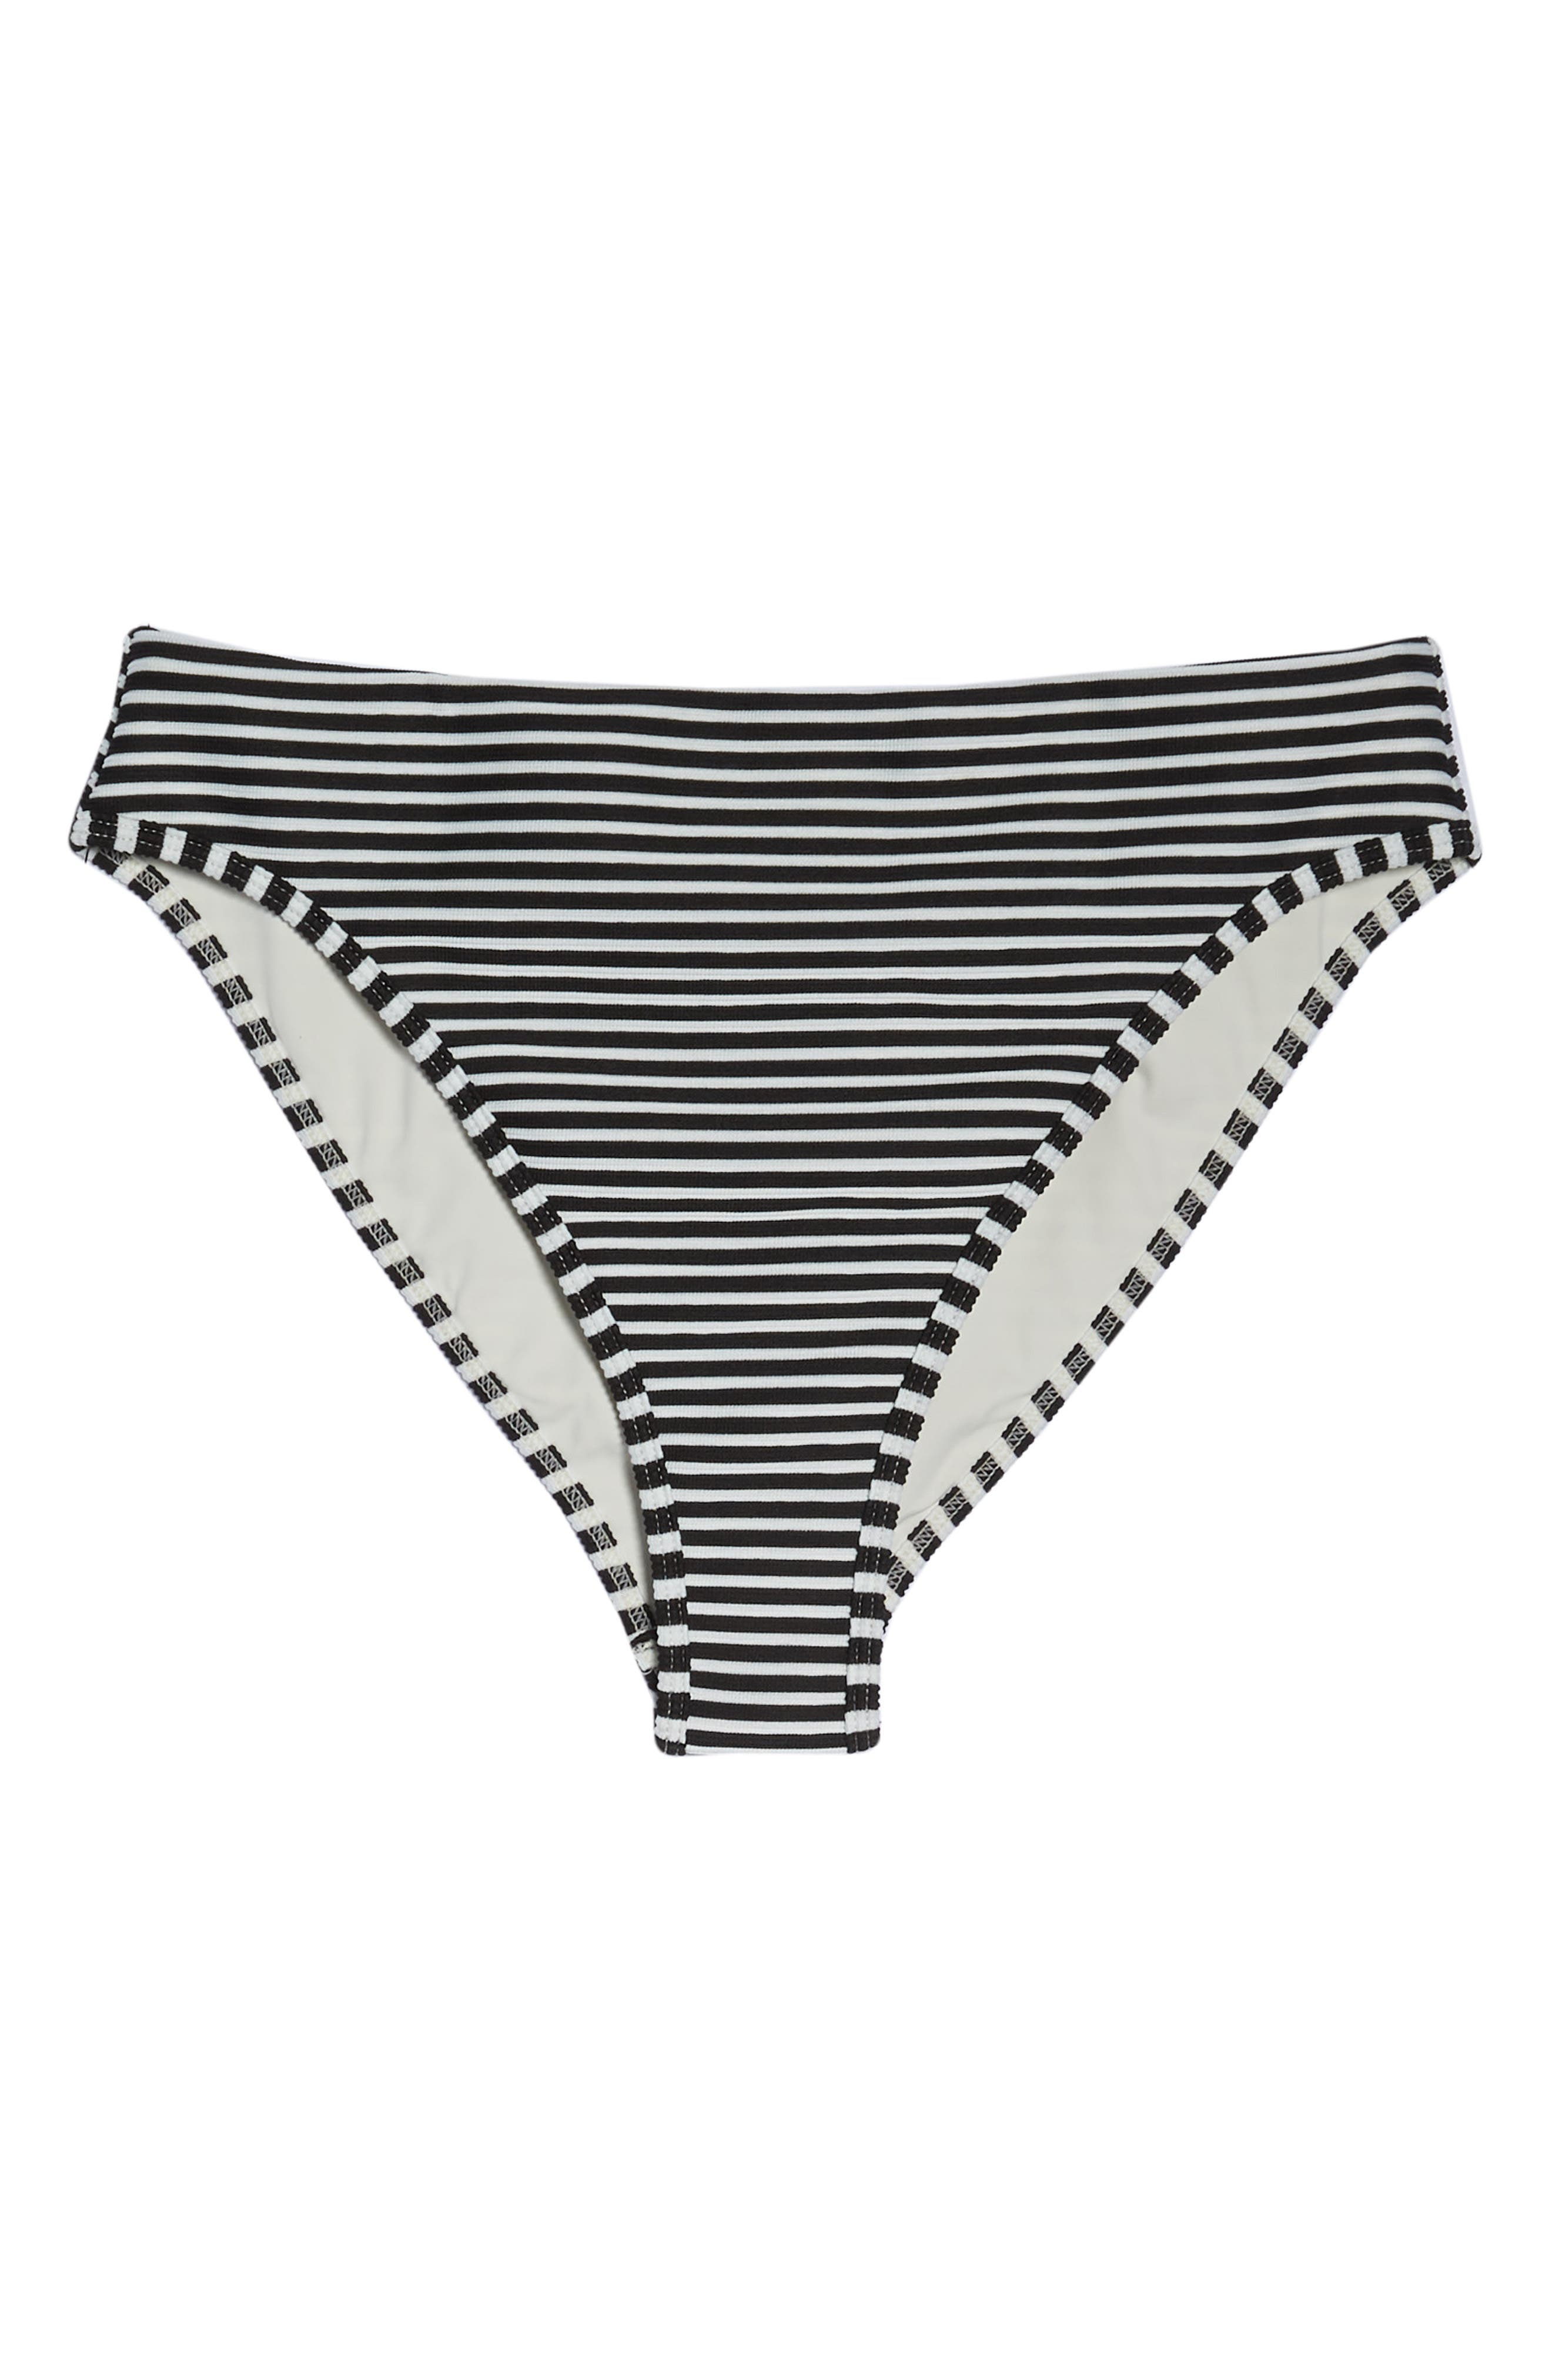 Pierre High Waist Bikini Bottoms,                             Alternate thumbnail 6, color,                             BLACK/ CREAM